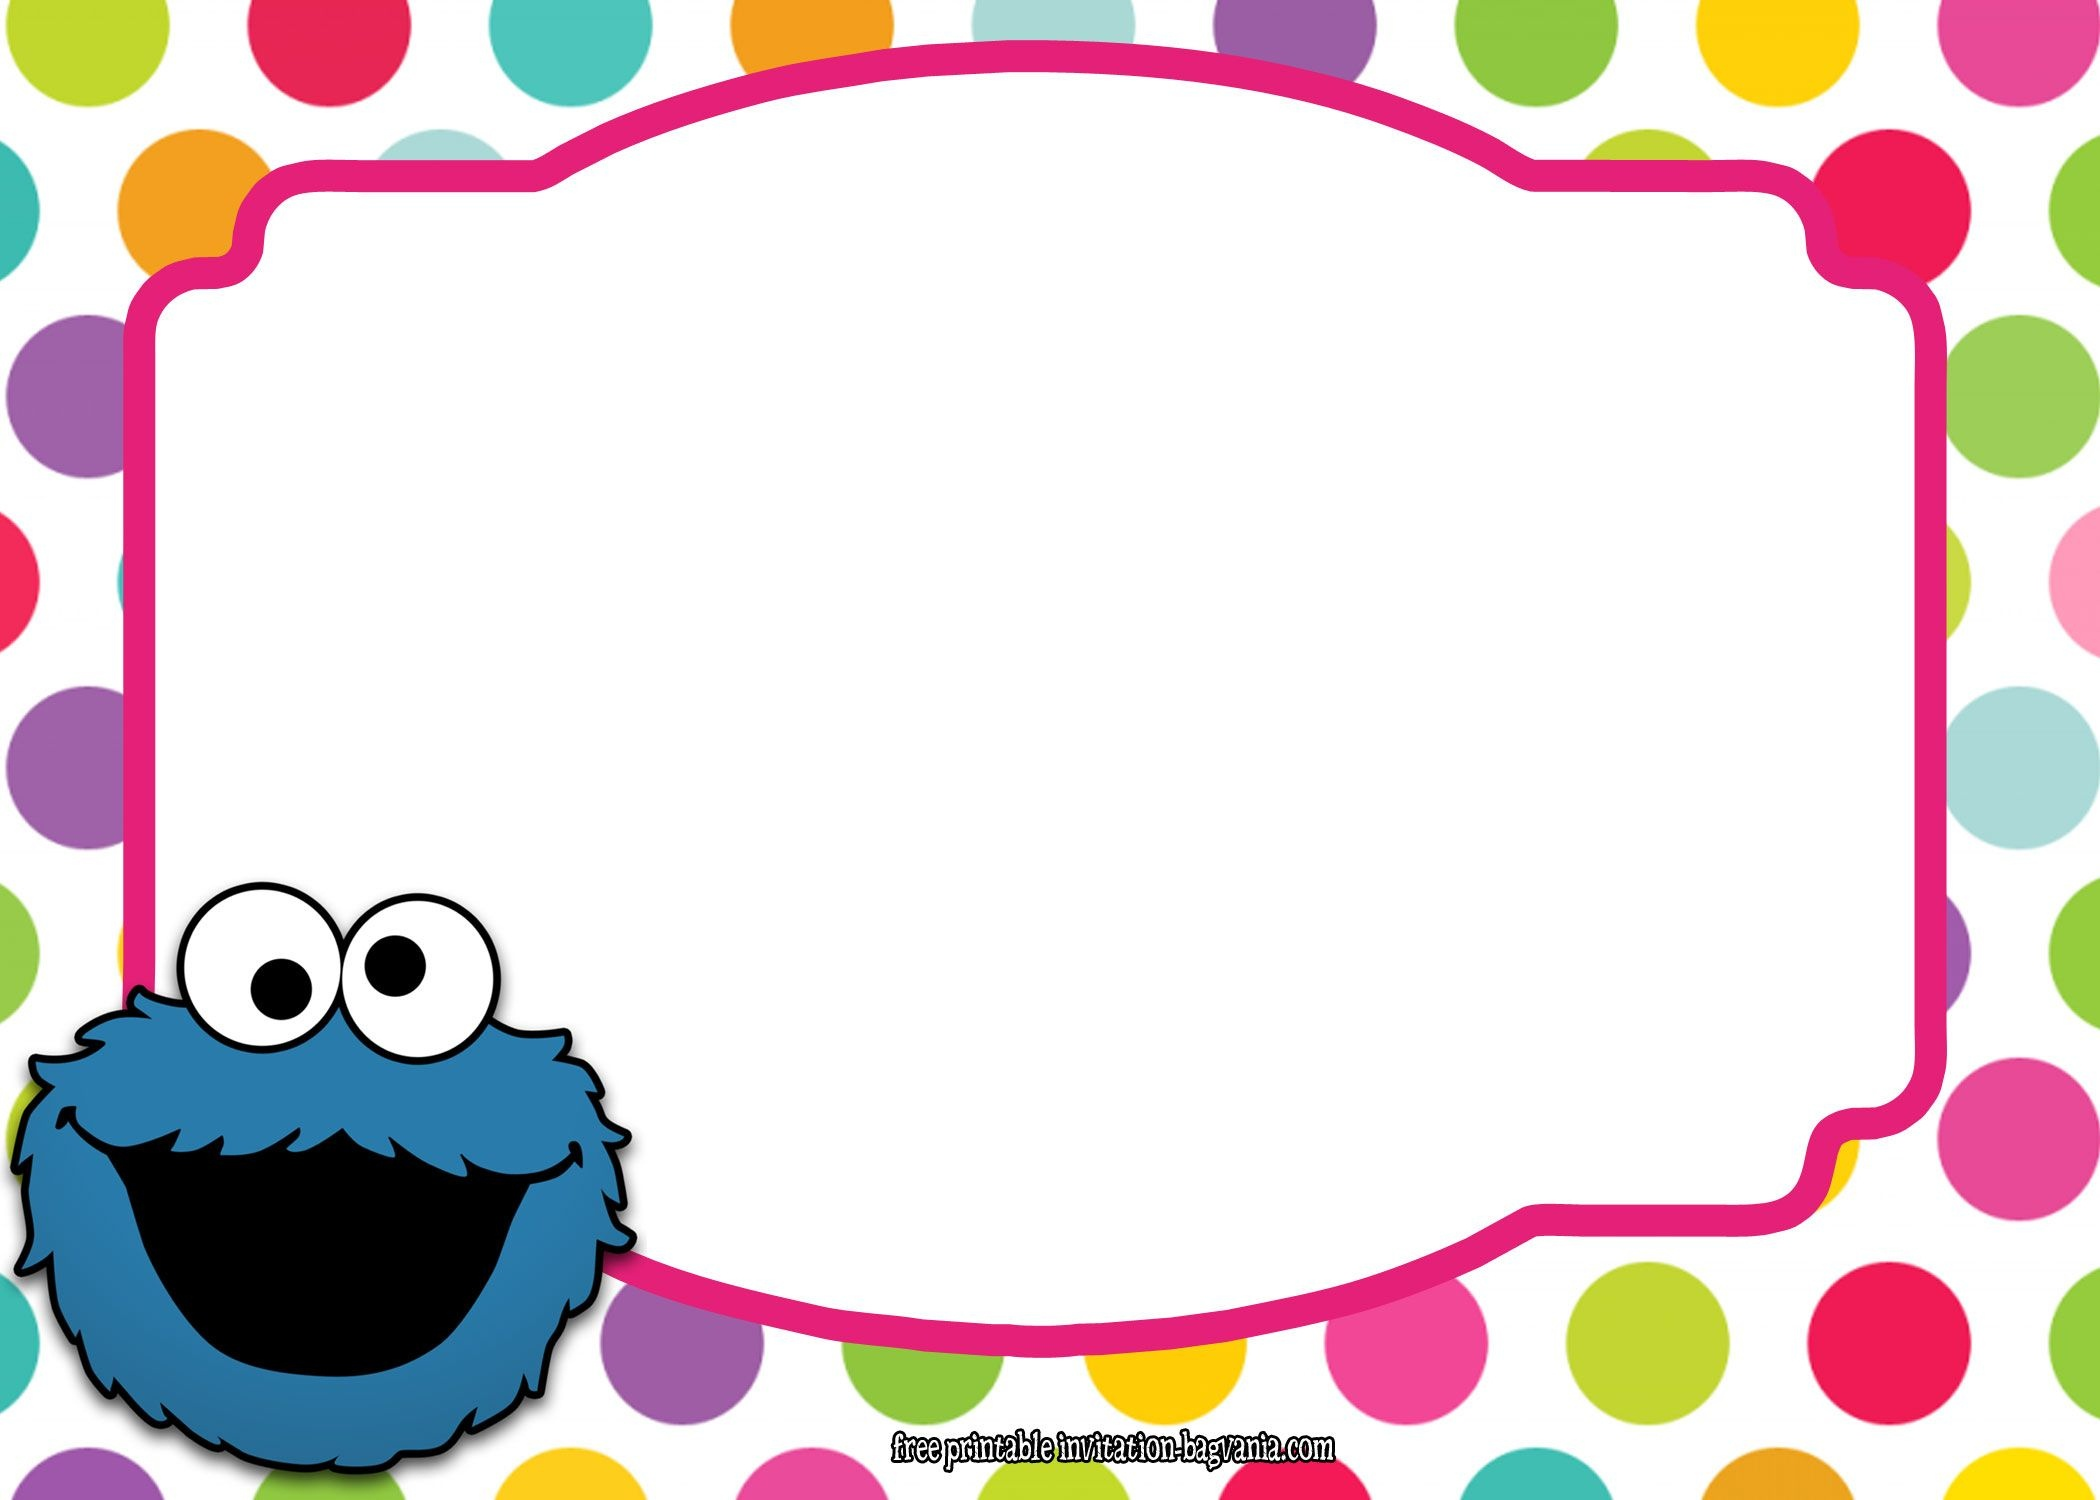 Download Now Sesame Street All Characters Invitation Template - Free Printable Monster Templates